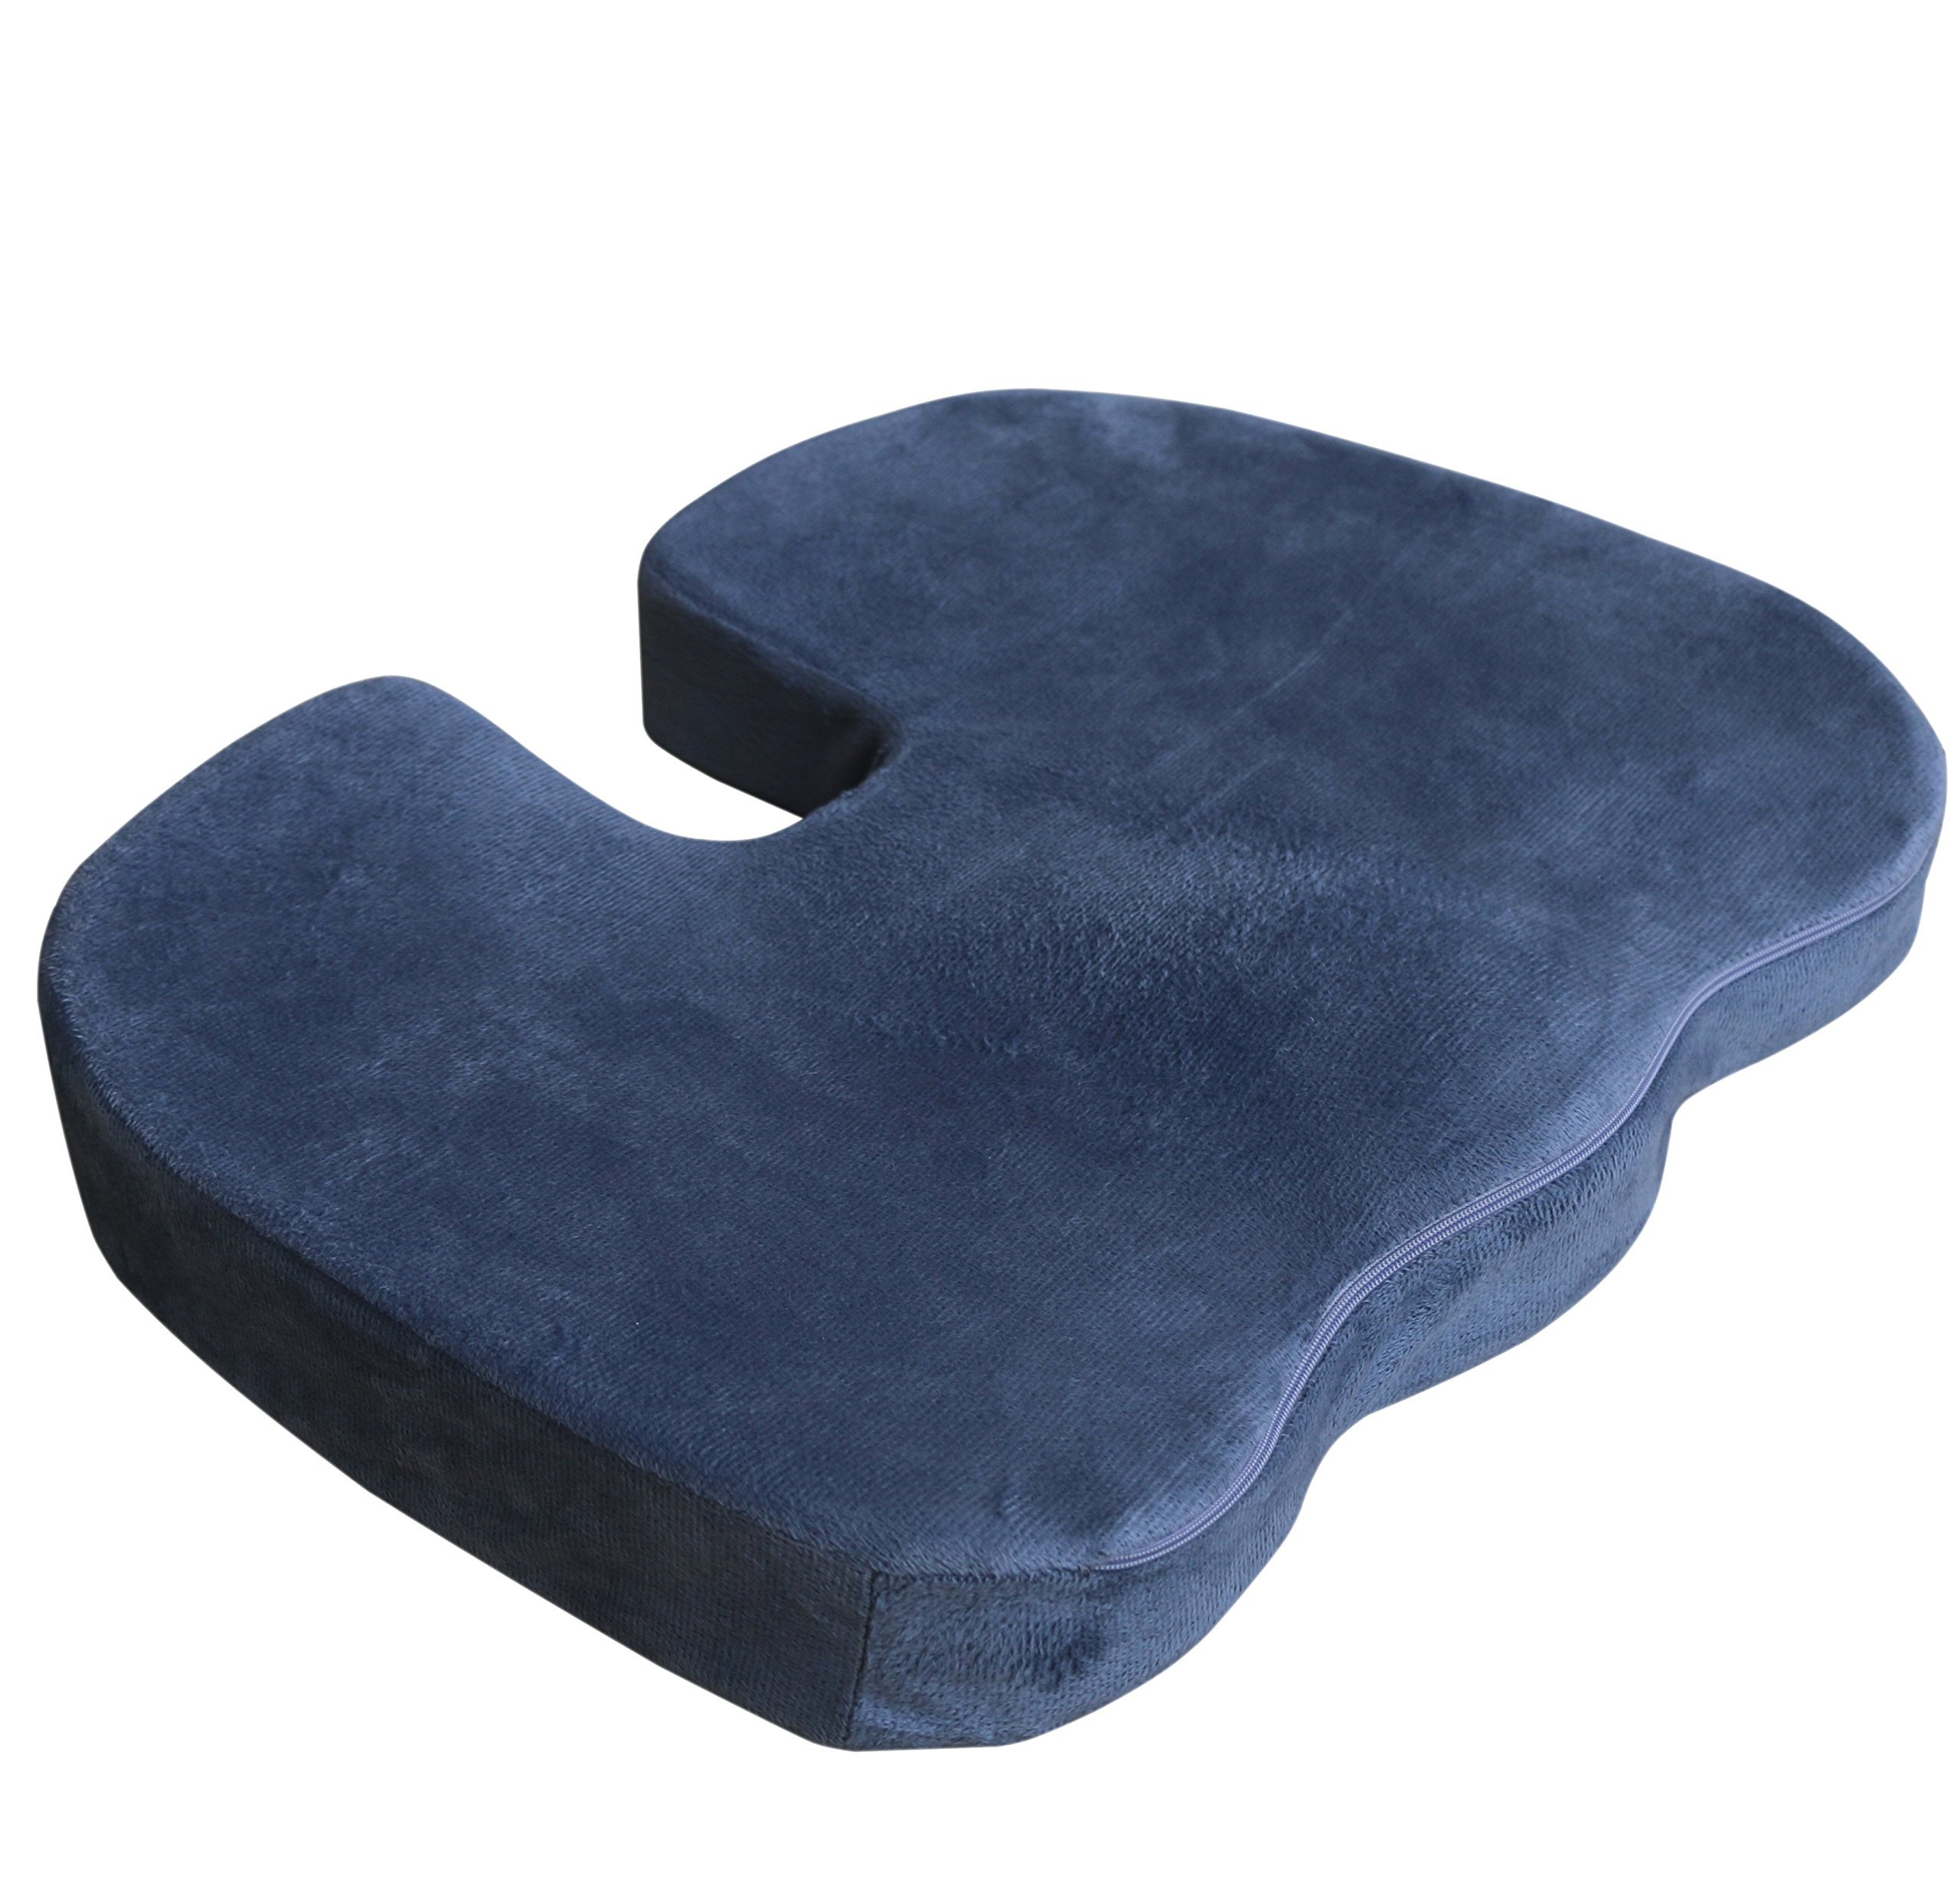 Coccyx Orthopedic Contoured Foam Seat Chair Cushion by Lemon Hero. Firmly Comfortable. Pillow Relieves Lower Back, Tailbone and Sciatica Pain